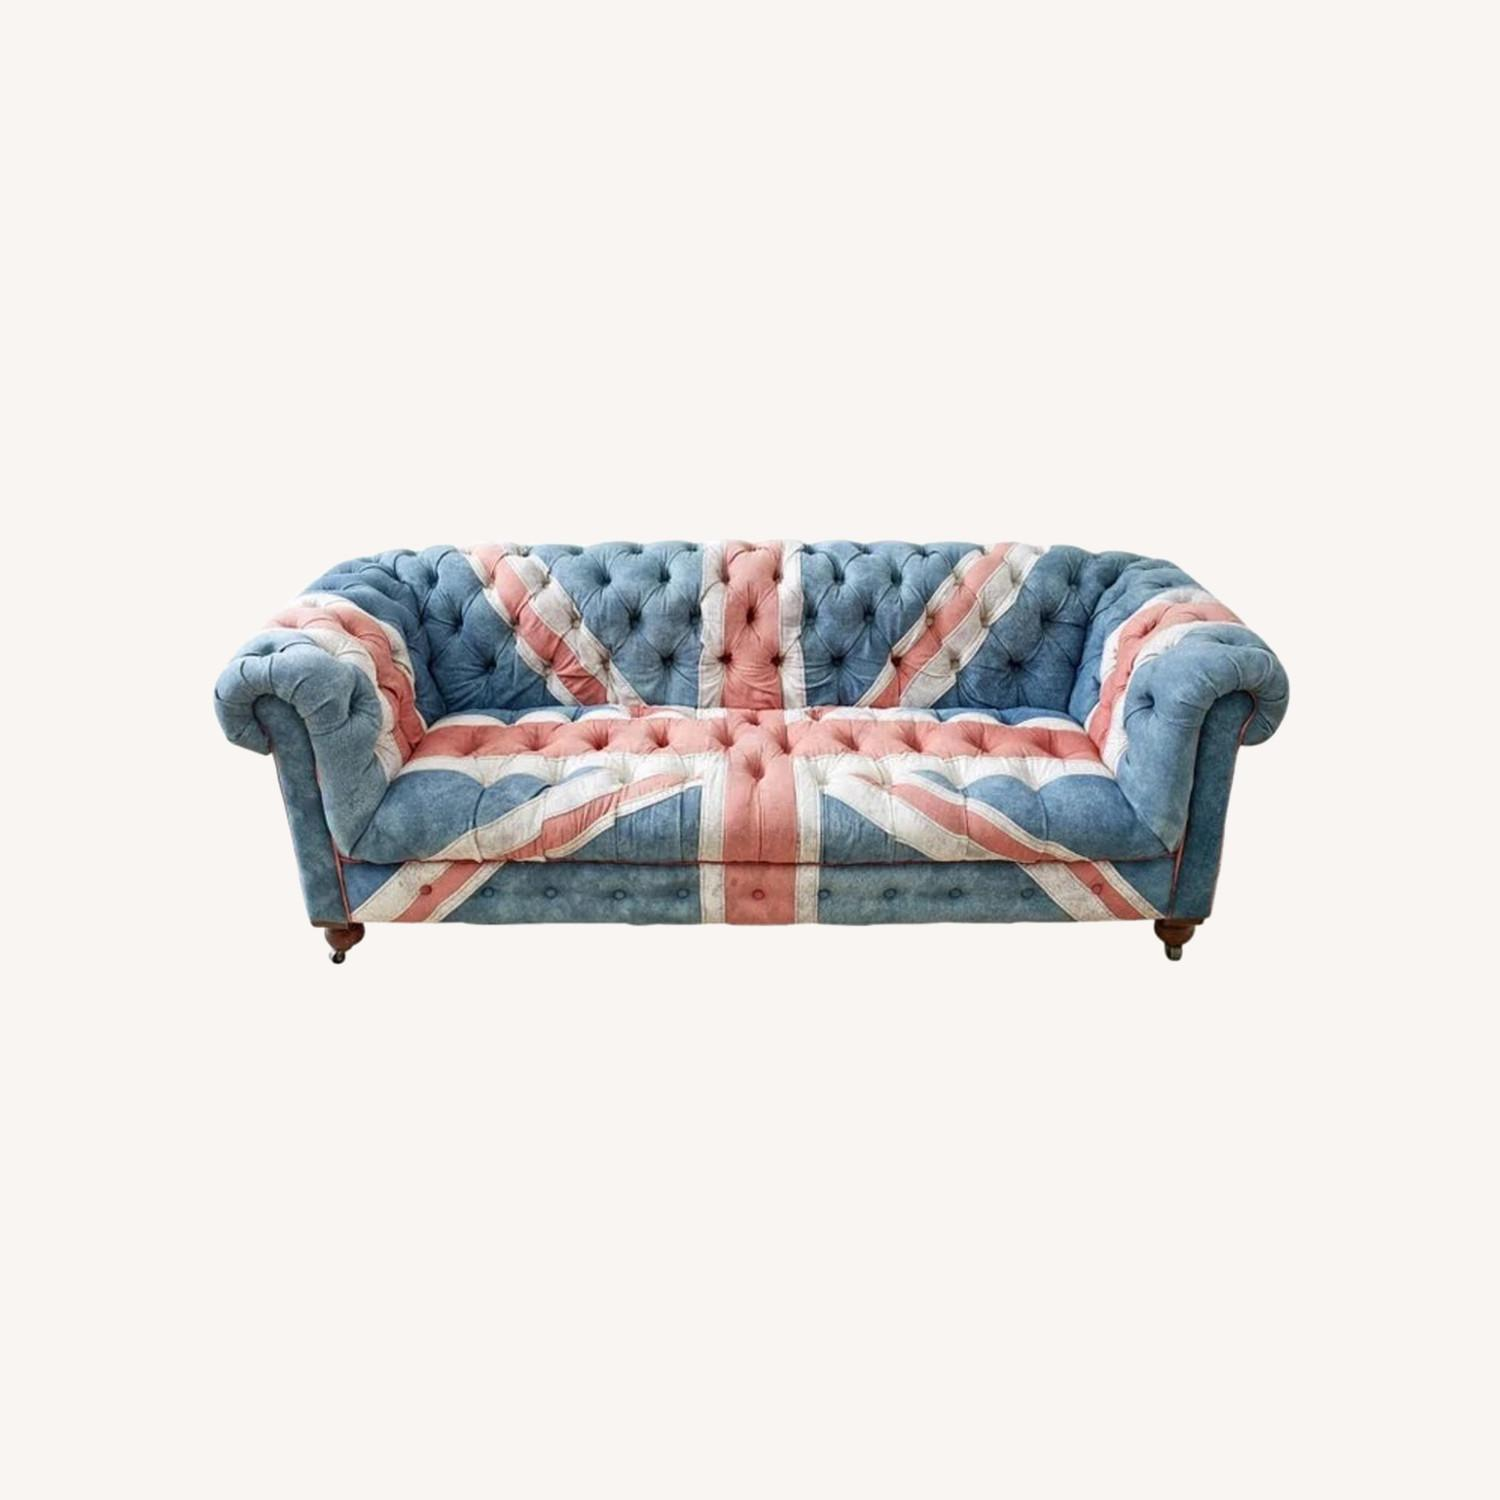 Timothy Oulton Design Union Jack Chesterfield Sofa - image-0